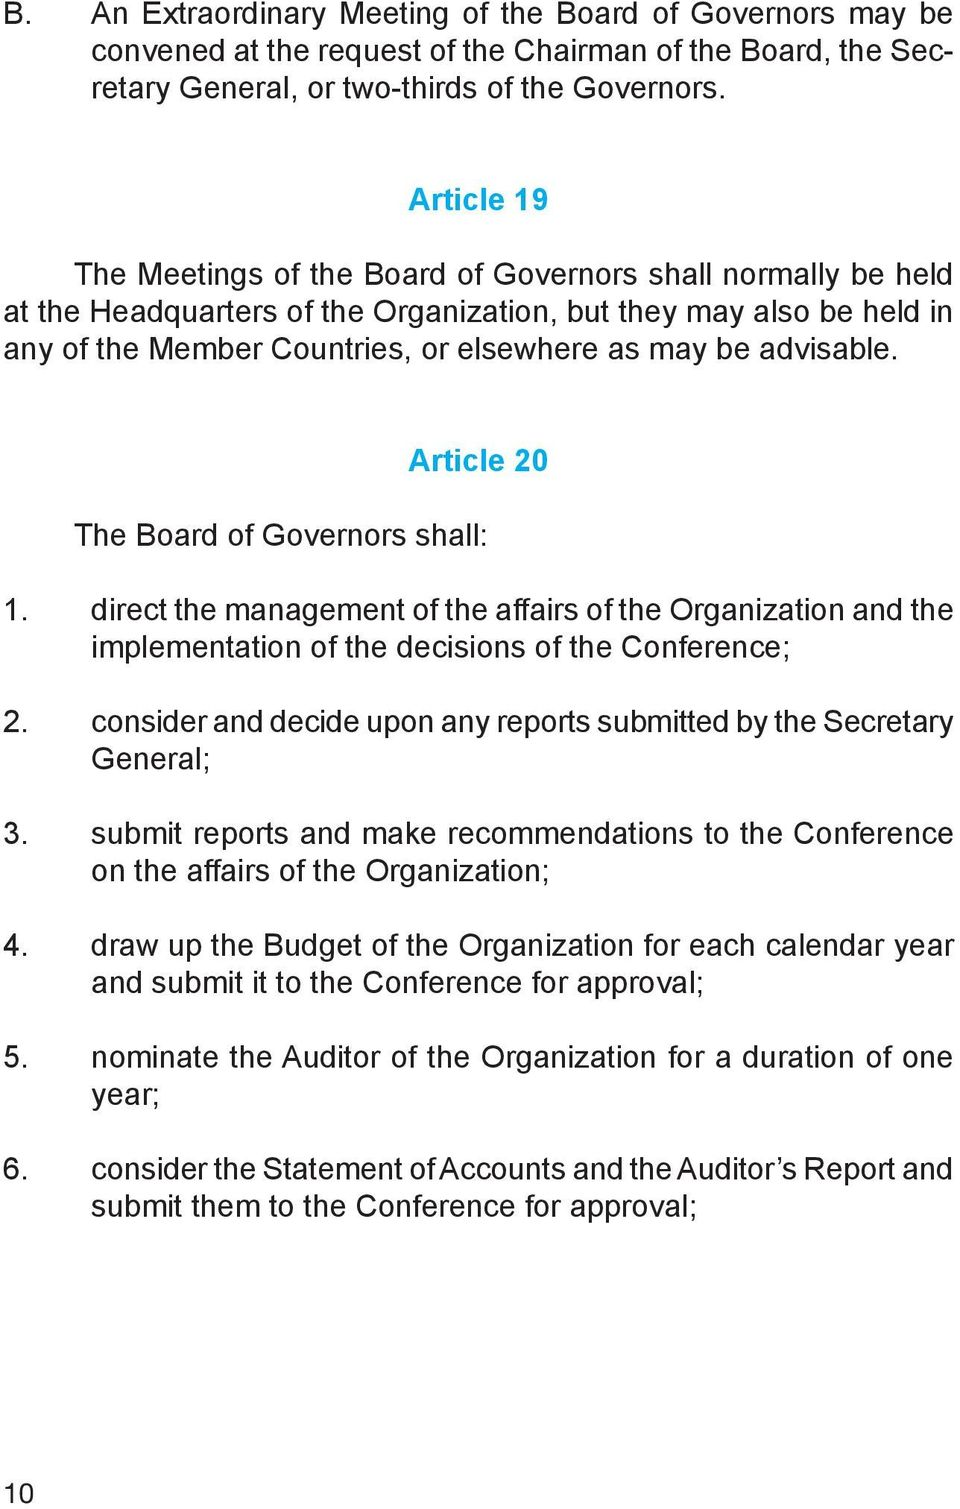 advisable. Article 20 The Board of Governors shall: 1. direct the management of the affairs of the Organization and the implementation of the decisions of the Conference; 2.